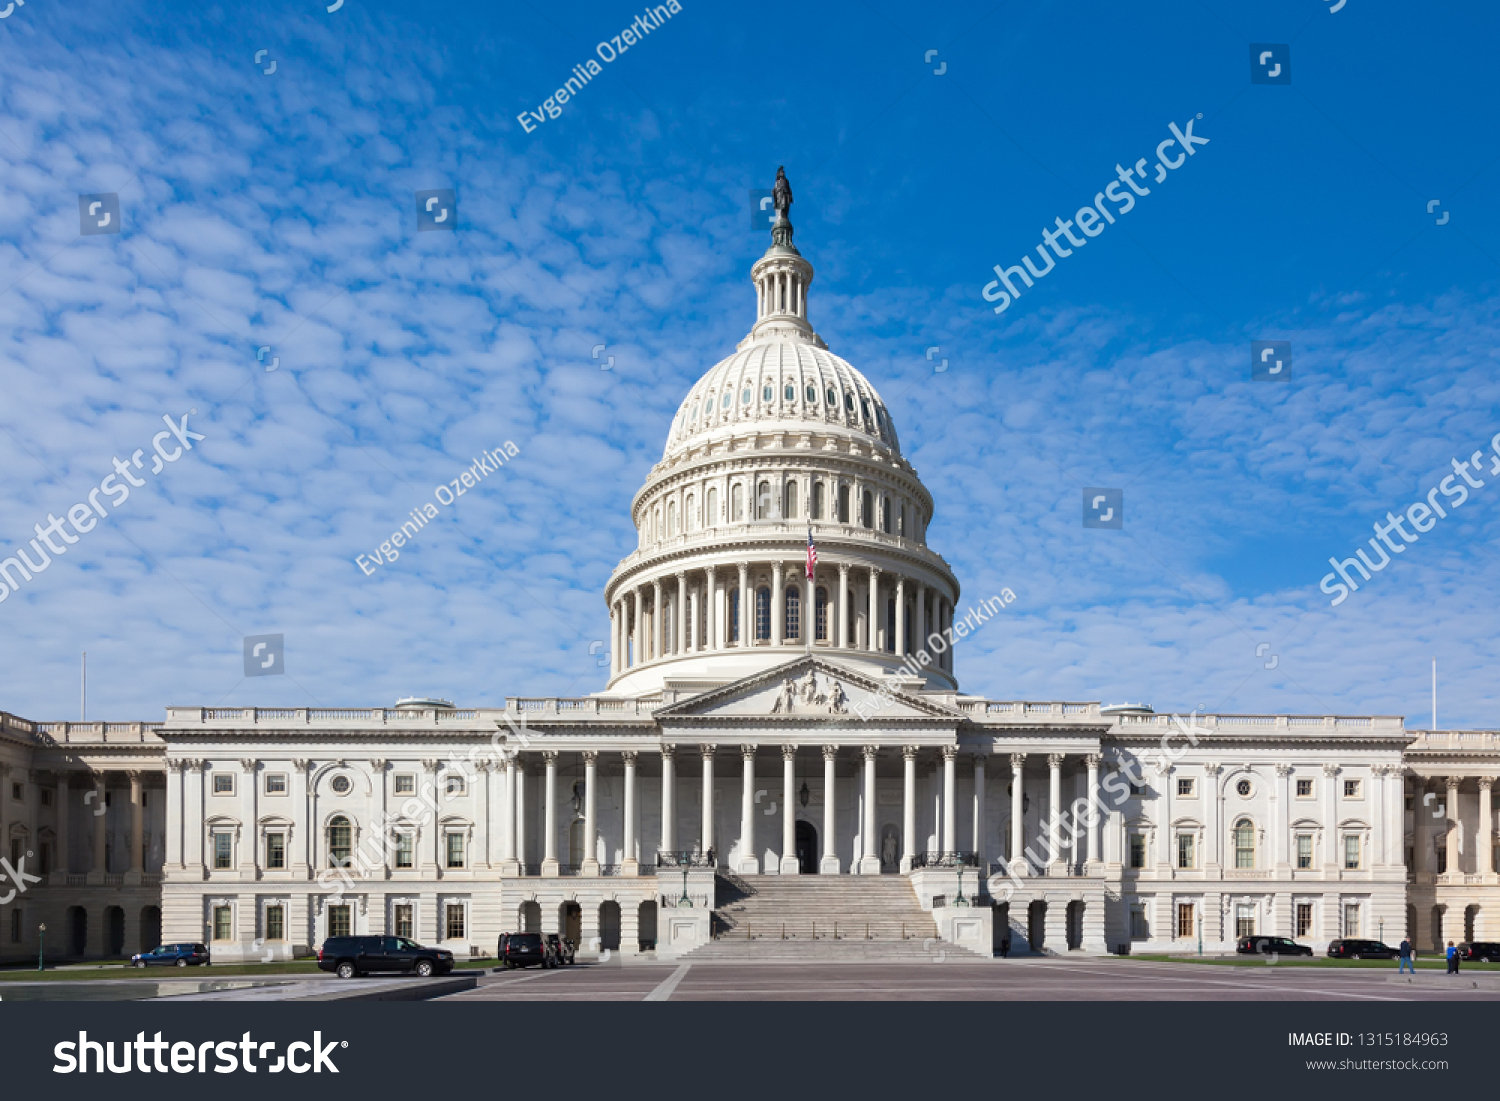 stock-photo-capitol-usa-building-at-day-